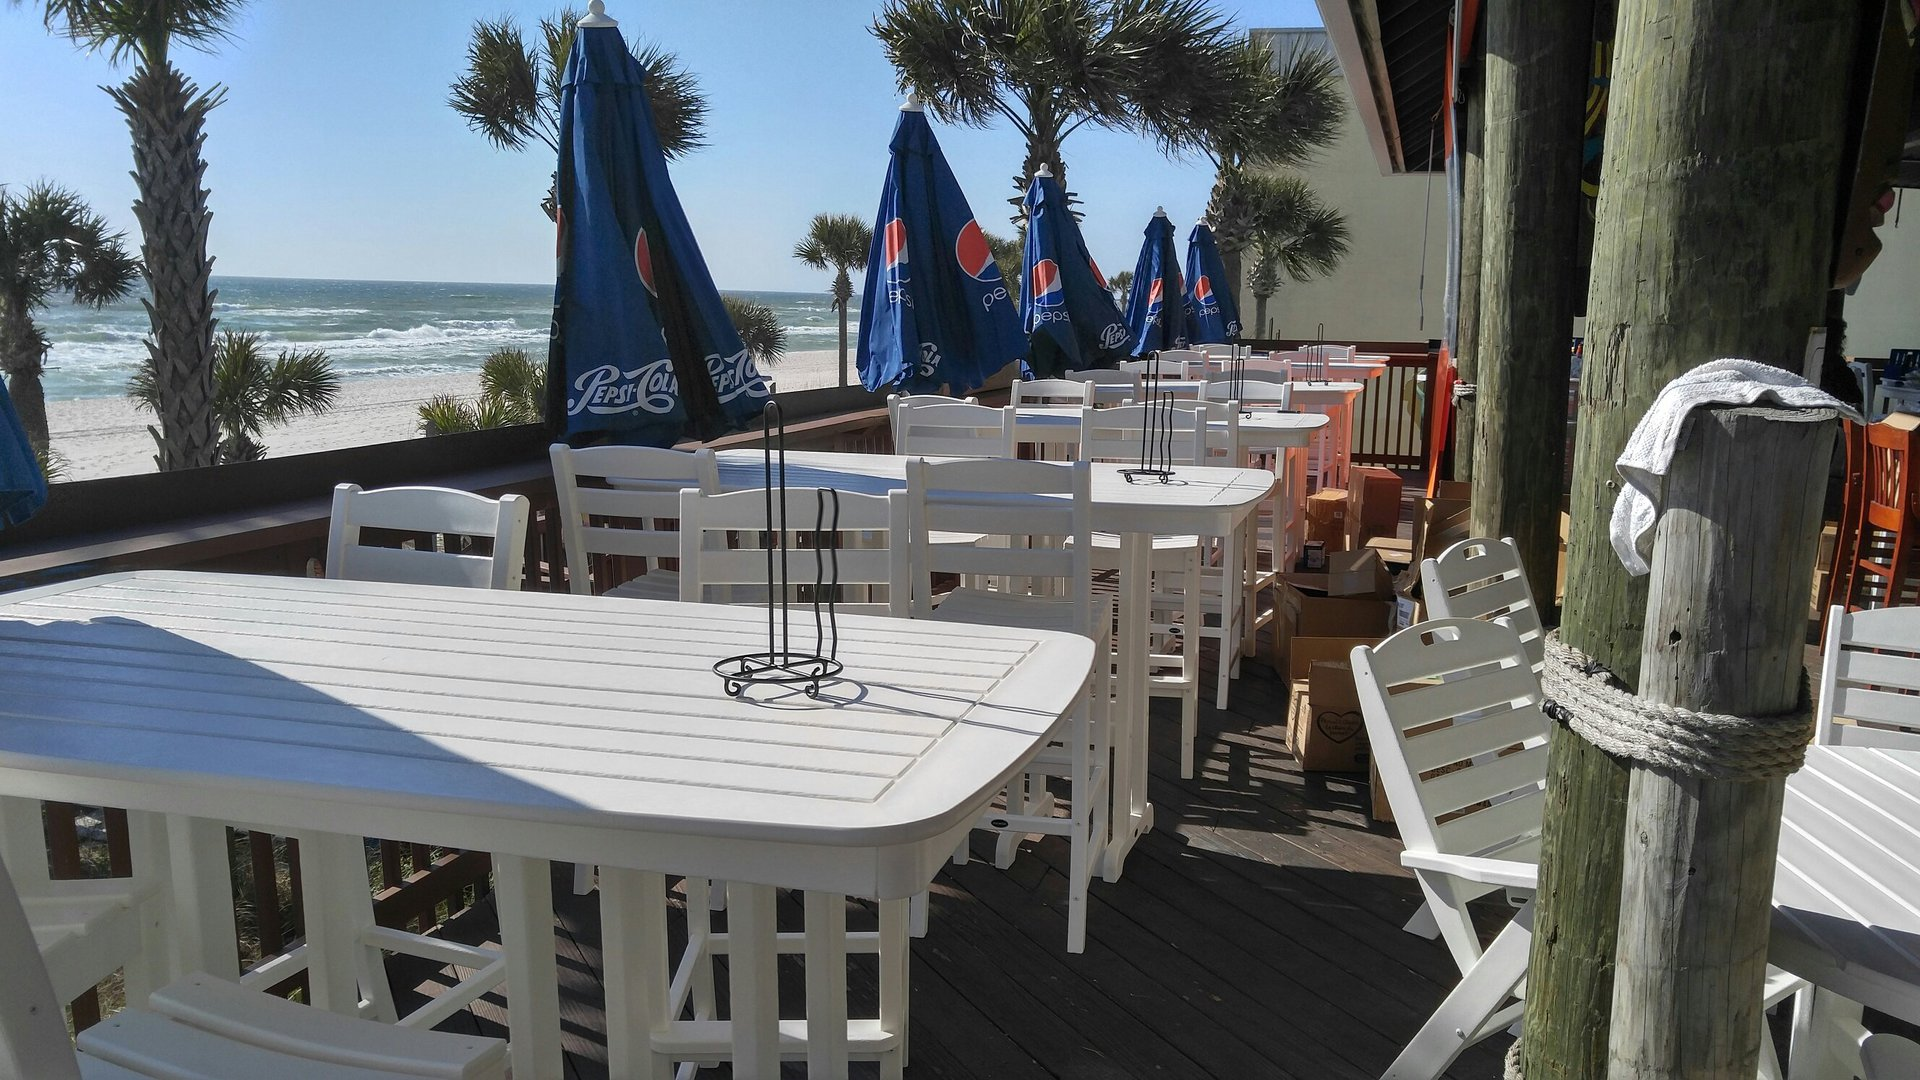 Barefoot hideaway grill panama city beach fl factory for Factory direct furniture